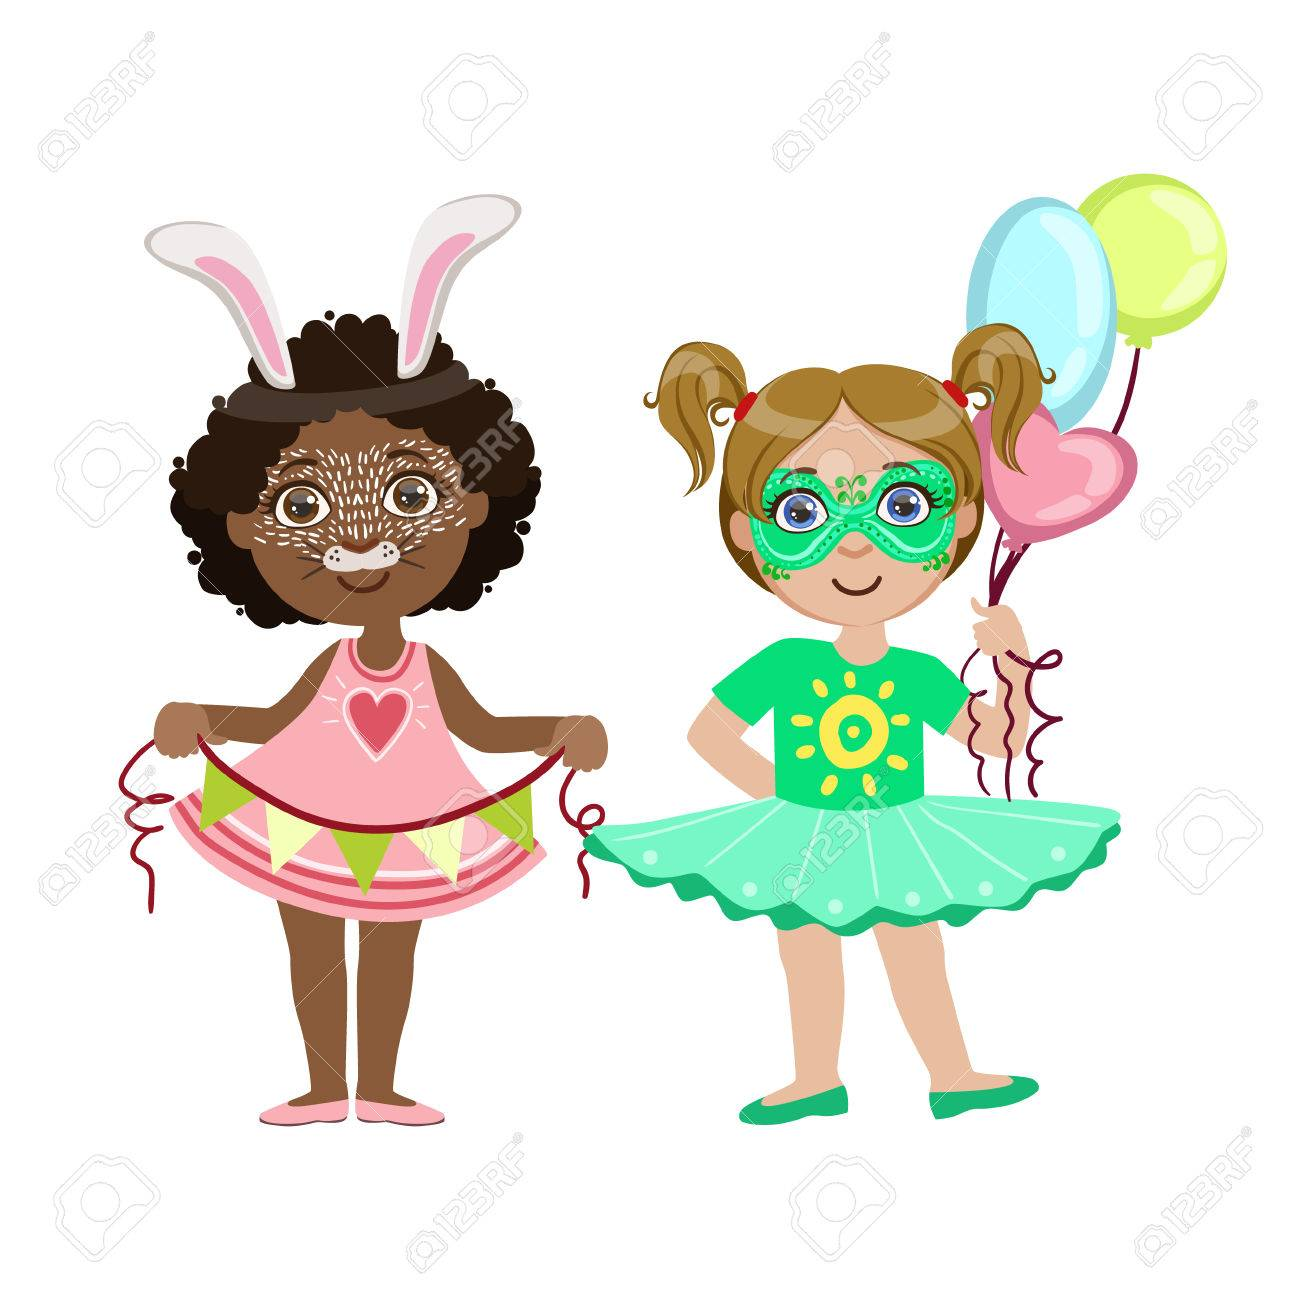 Two Girls With Cute Make Up Bright Color Cartoon Childish Style